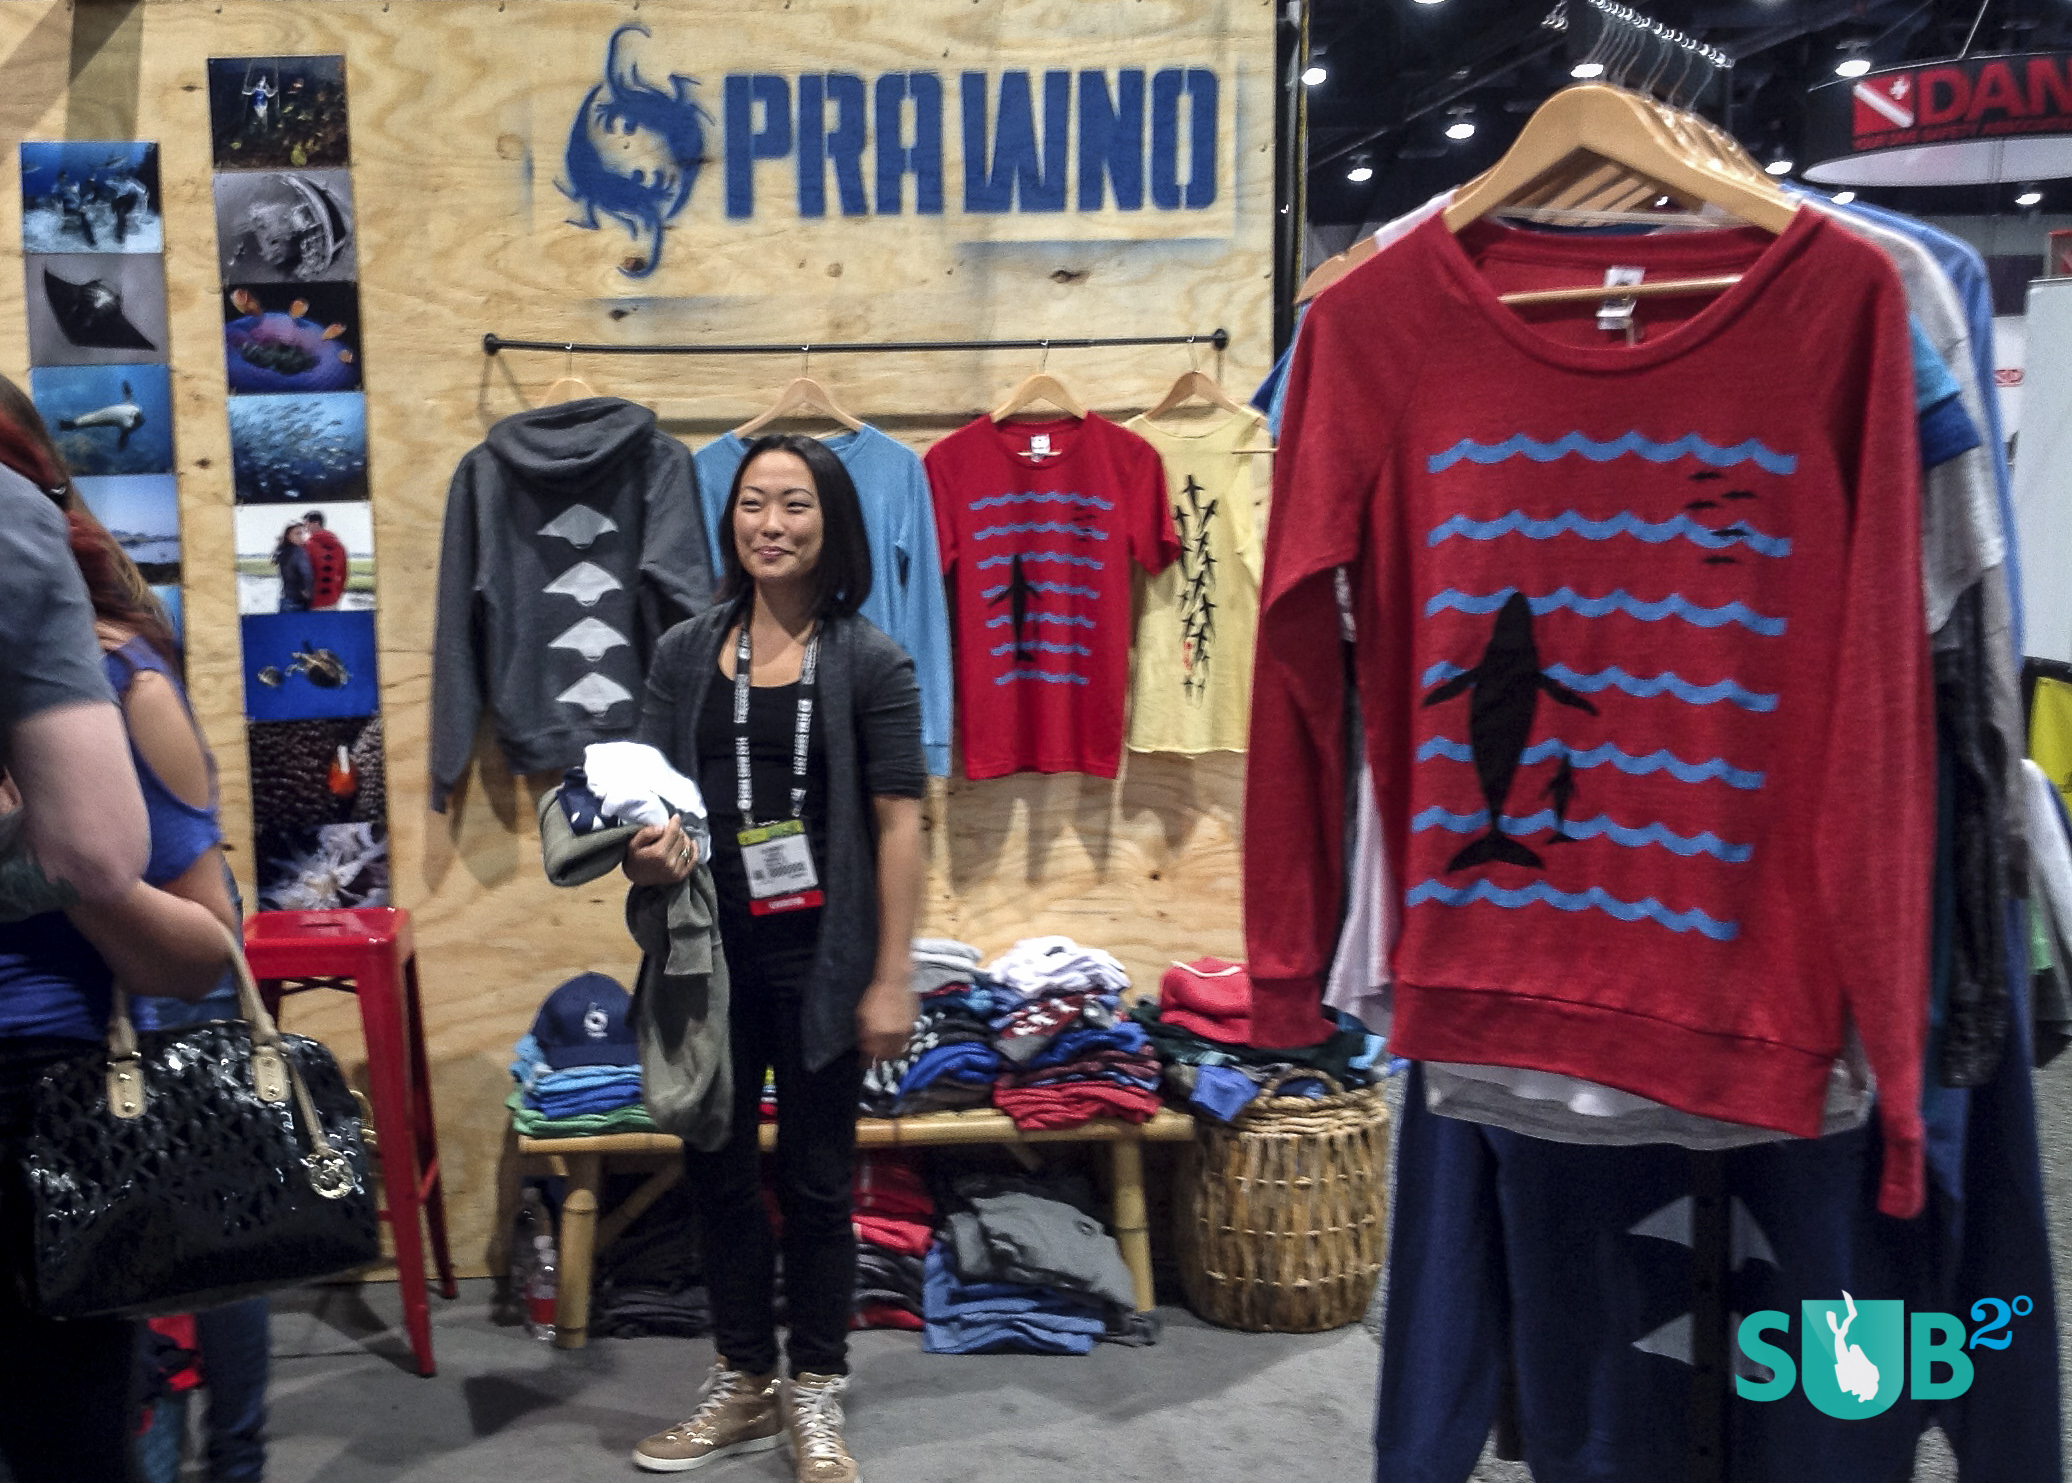 Lia Barrett, creative director for Prawno Apparel, shows off their fashionable ocean-minded clothing line.